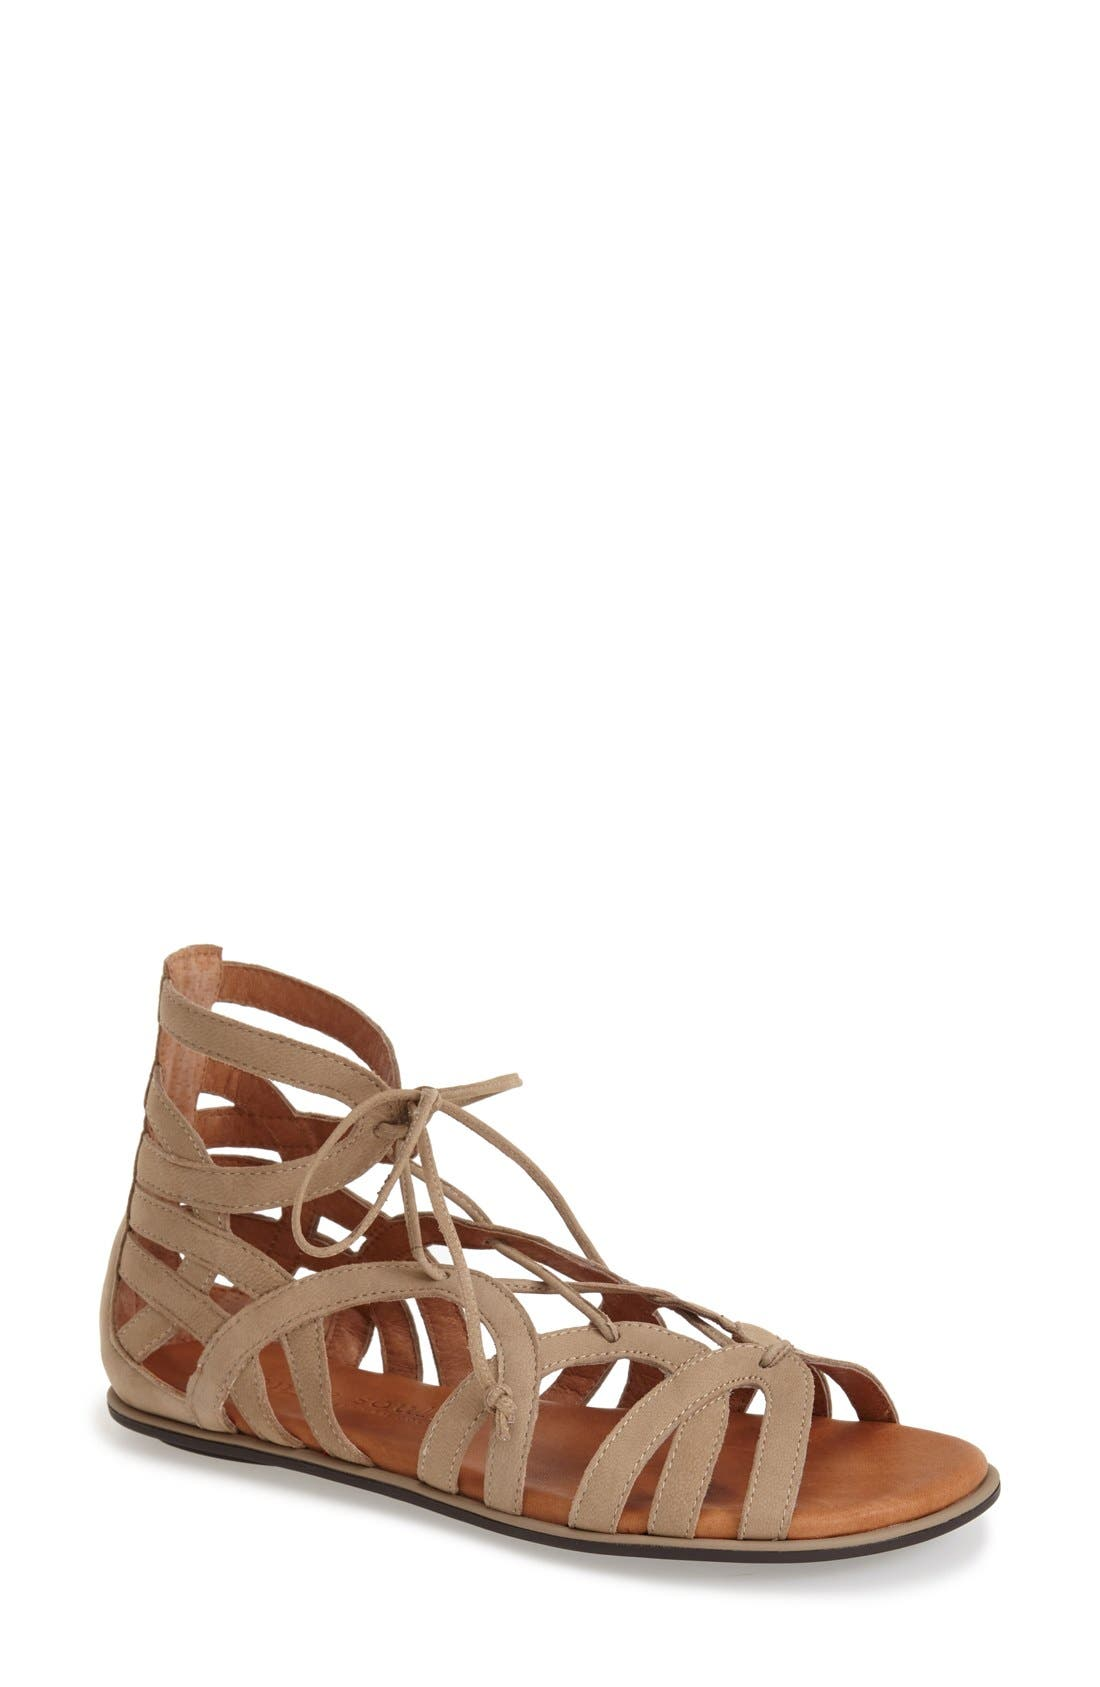 by Kenneth Cole 'Break My Heart 3' Cage Sandal,                             Main thumbnail 1, color,                             Taupe Suede